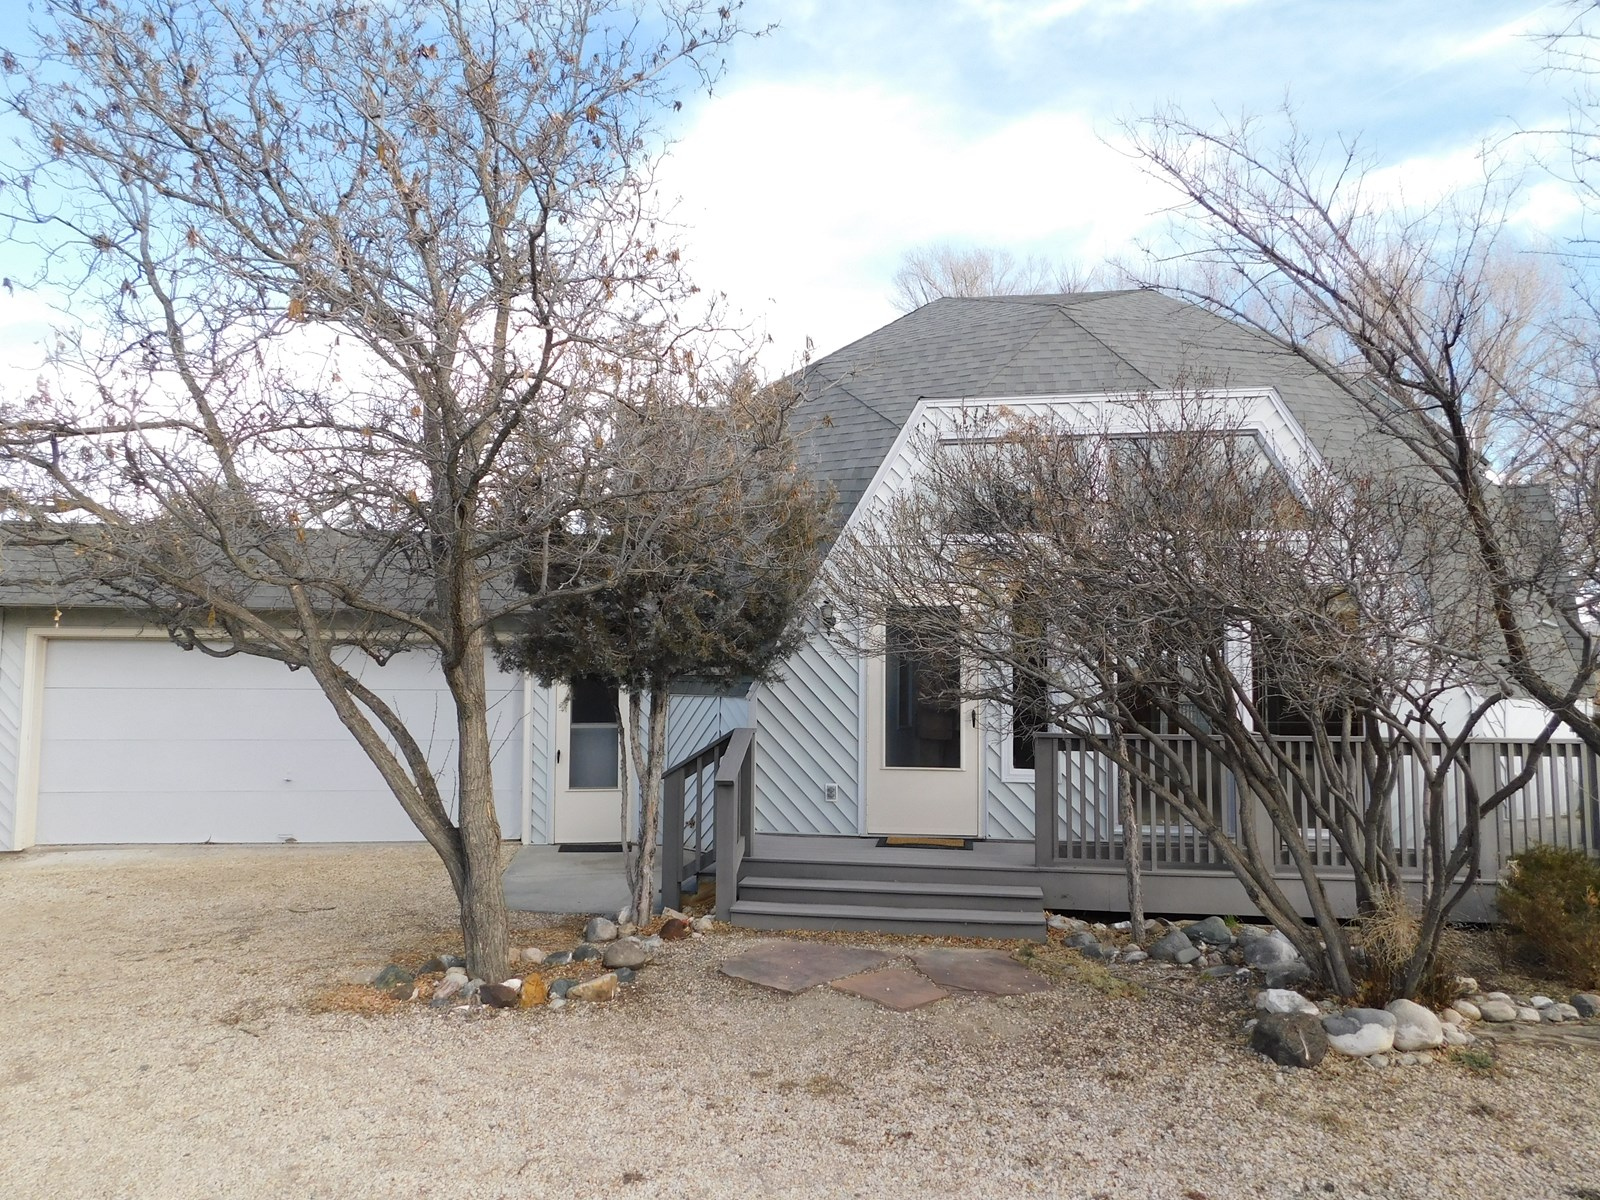 Clean and Sharp Dome Home For Sale in Salida, Colorado